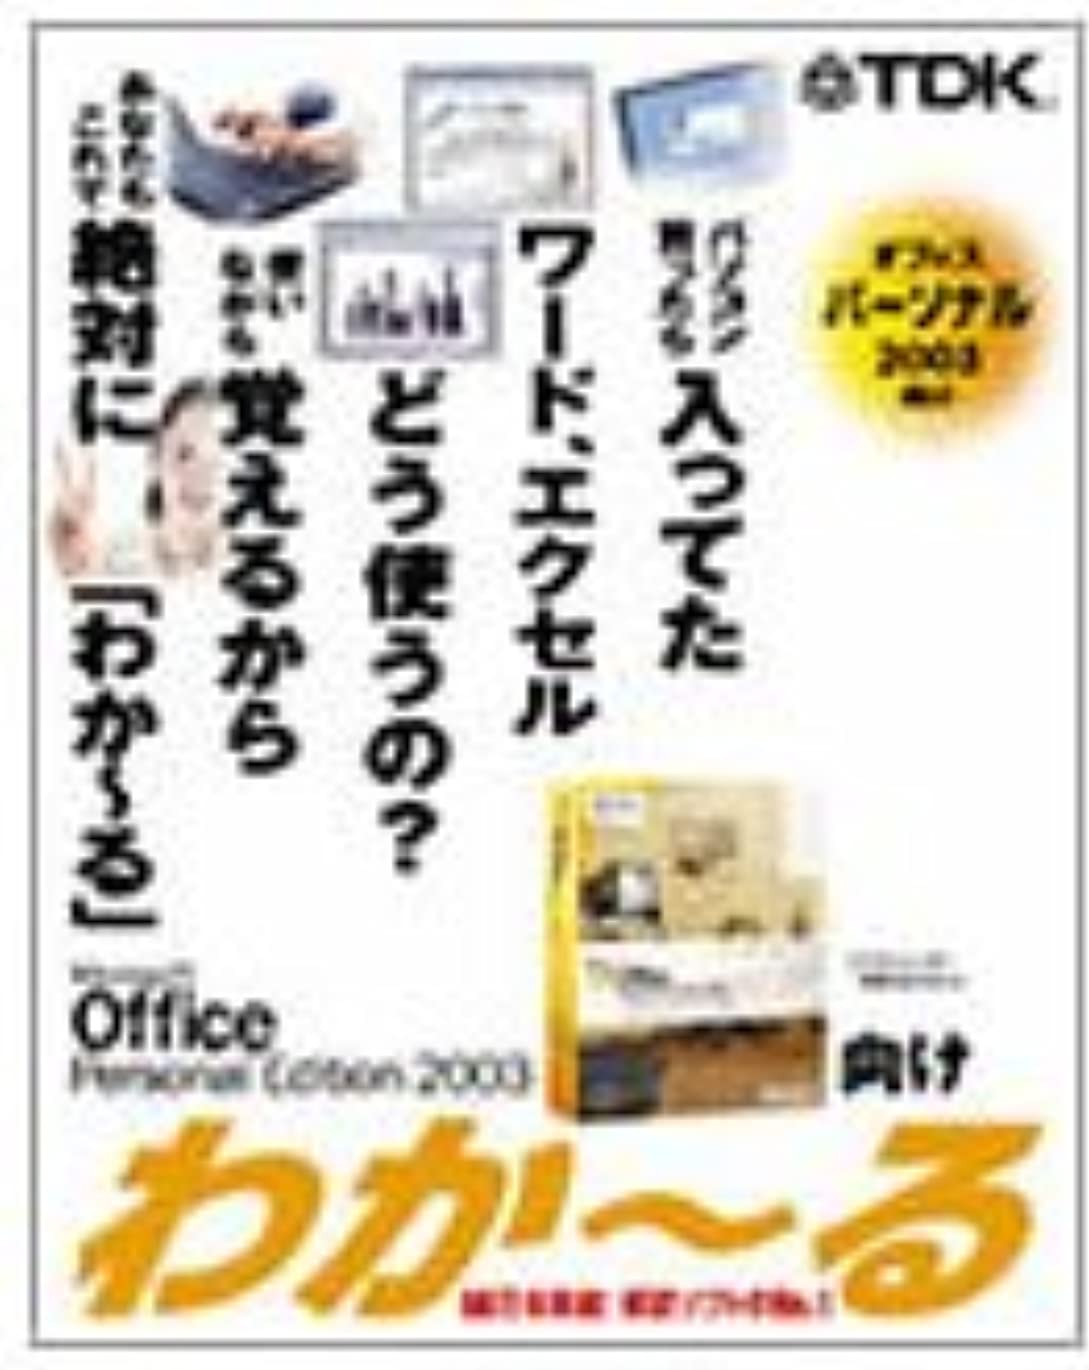 程度いつ絵Microsoft Office Parsonal Edition 2003向け わか~る